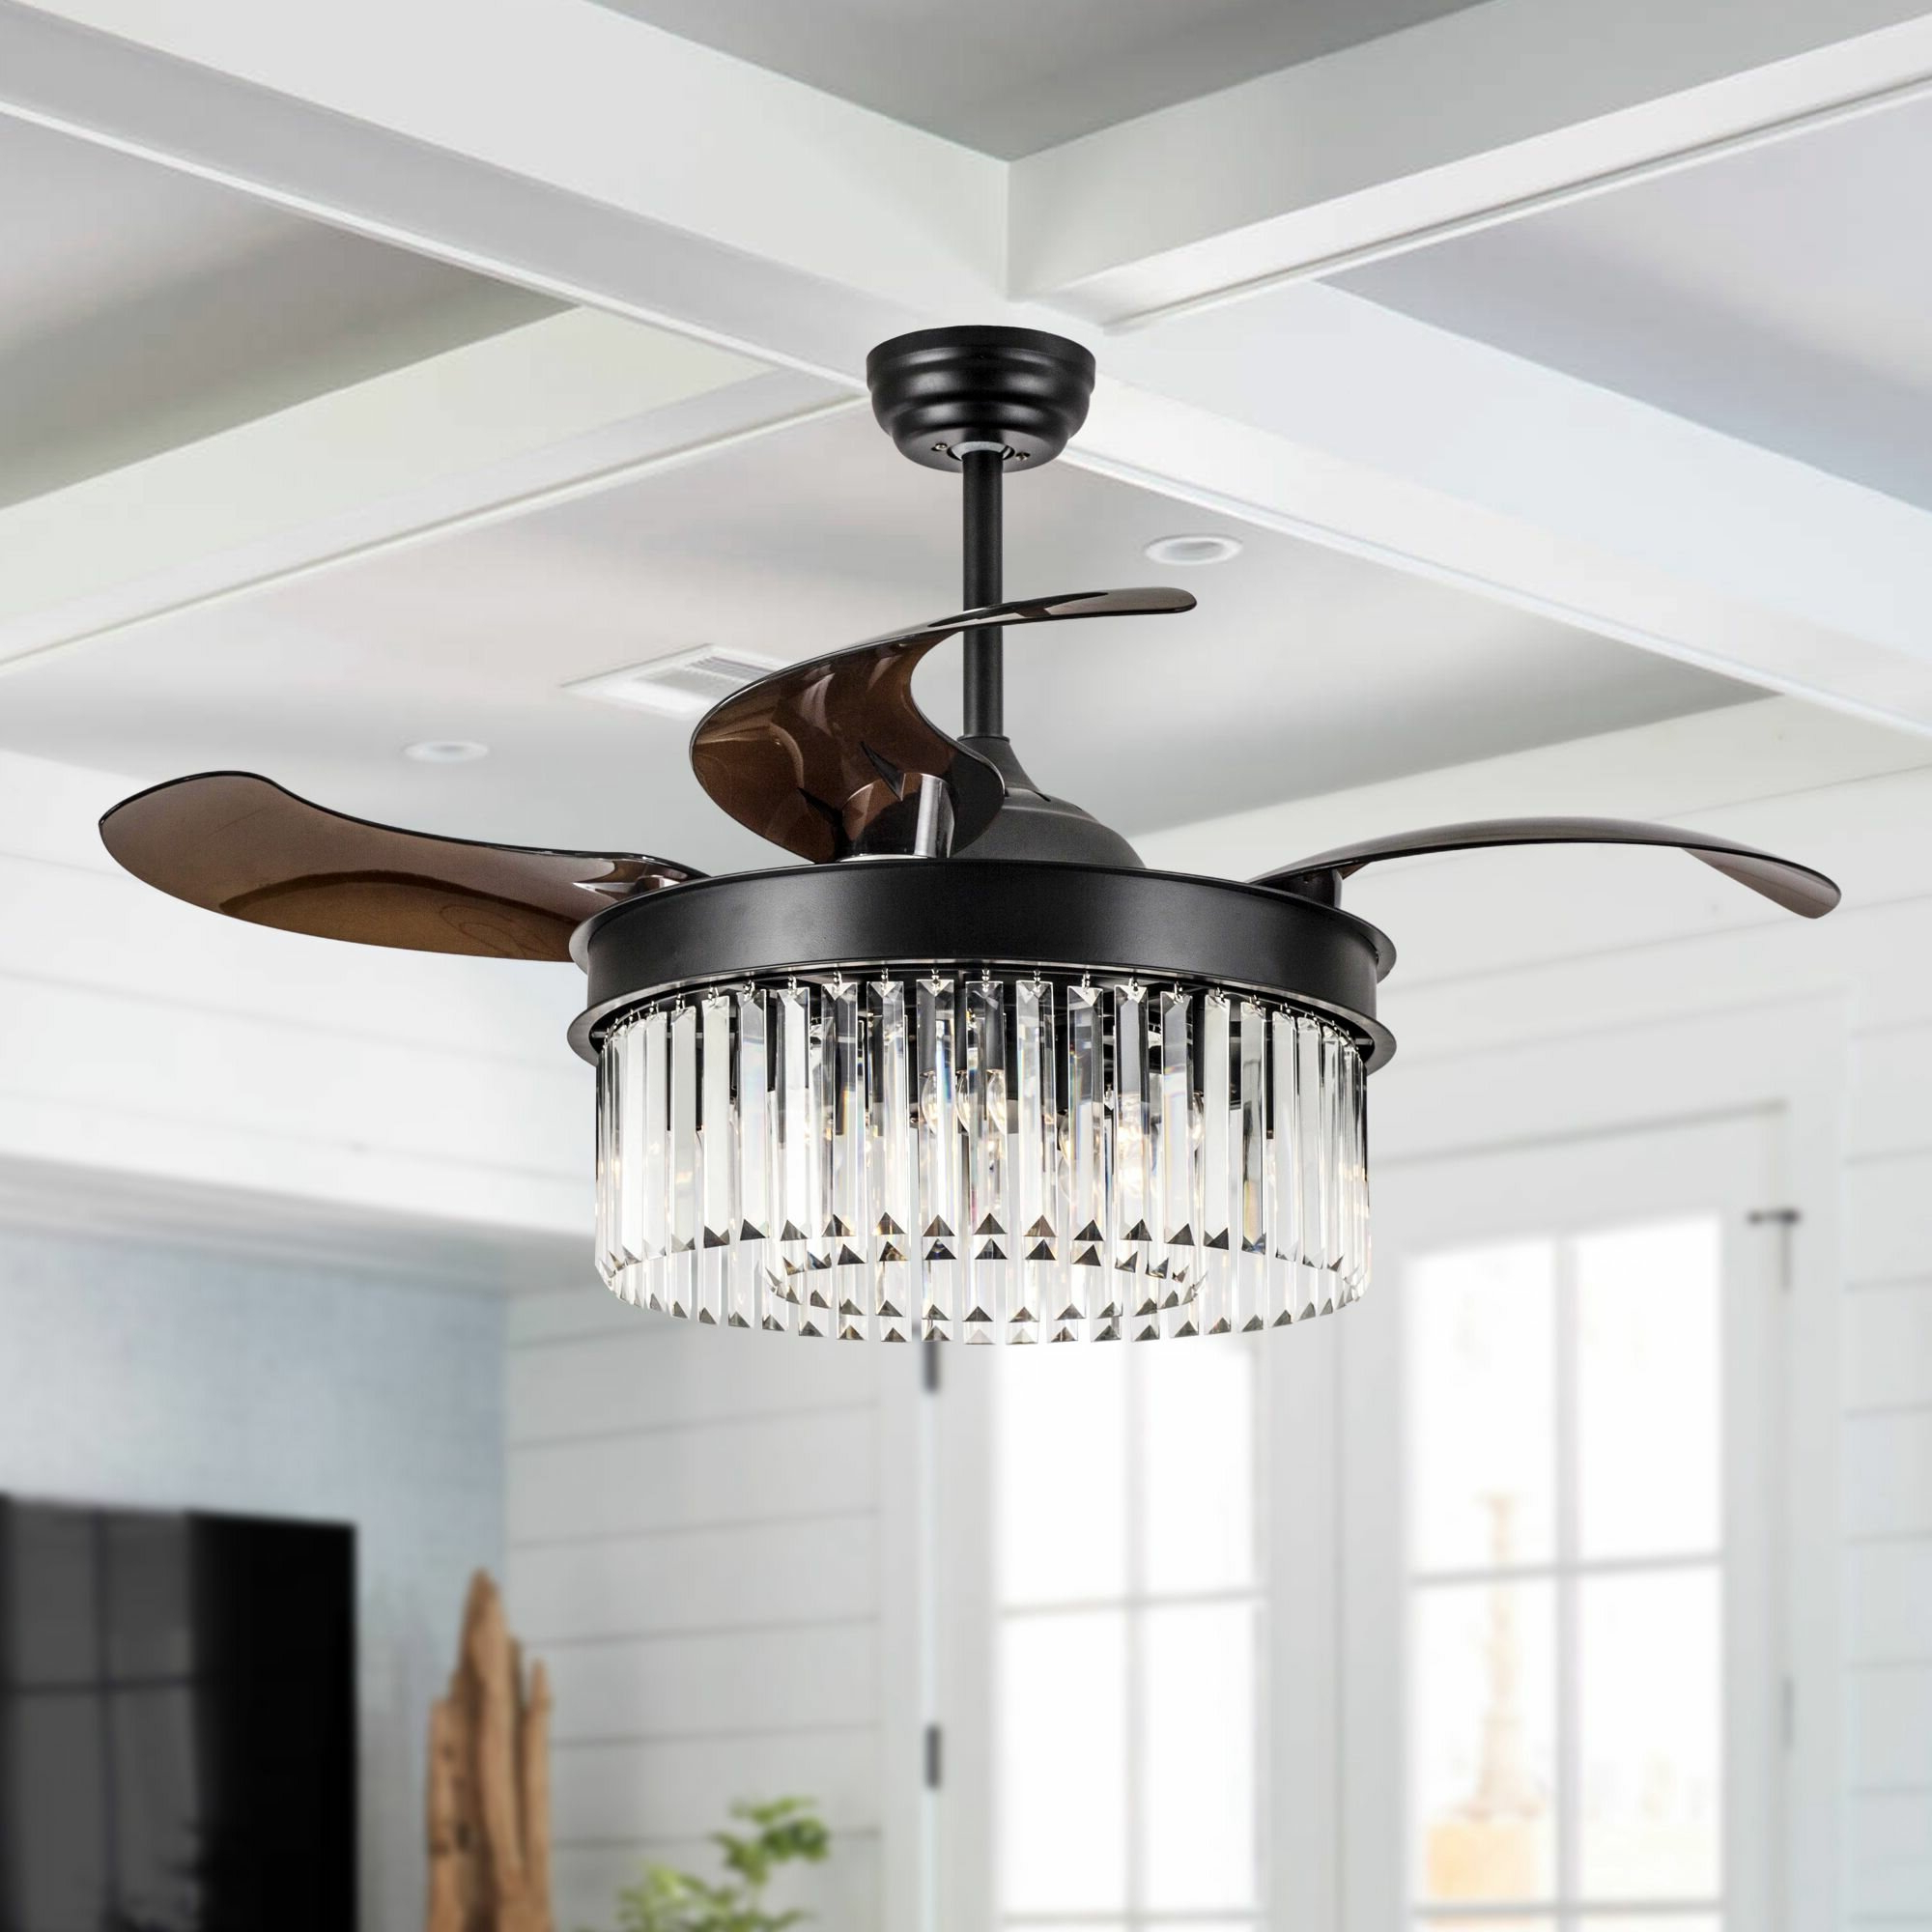 2019 Schulze Crystal Retractable 4 Blade Ceiling Fan With Remote, Light Kit  Included Throughout Servantes Retractable 4 Blade Ceiling Fans With Remote (View 2 of 20)